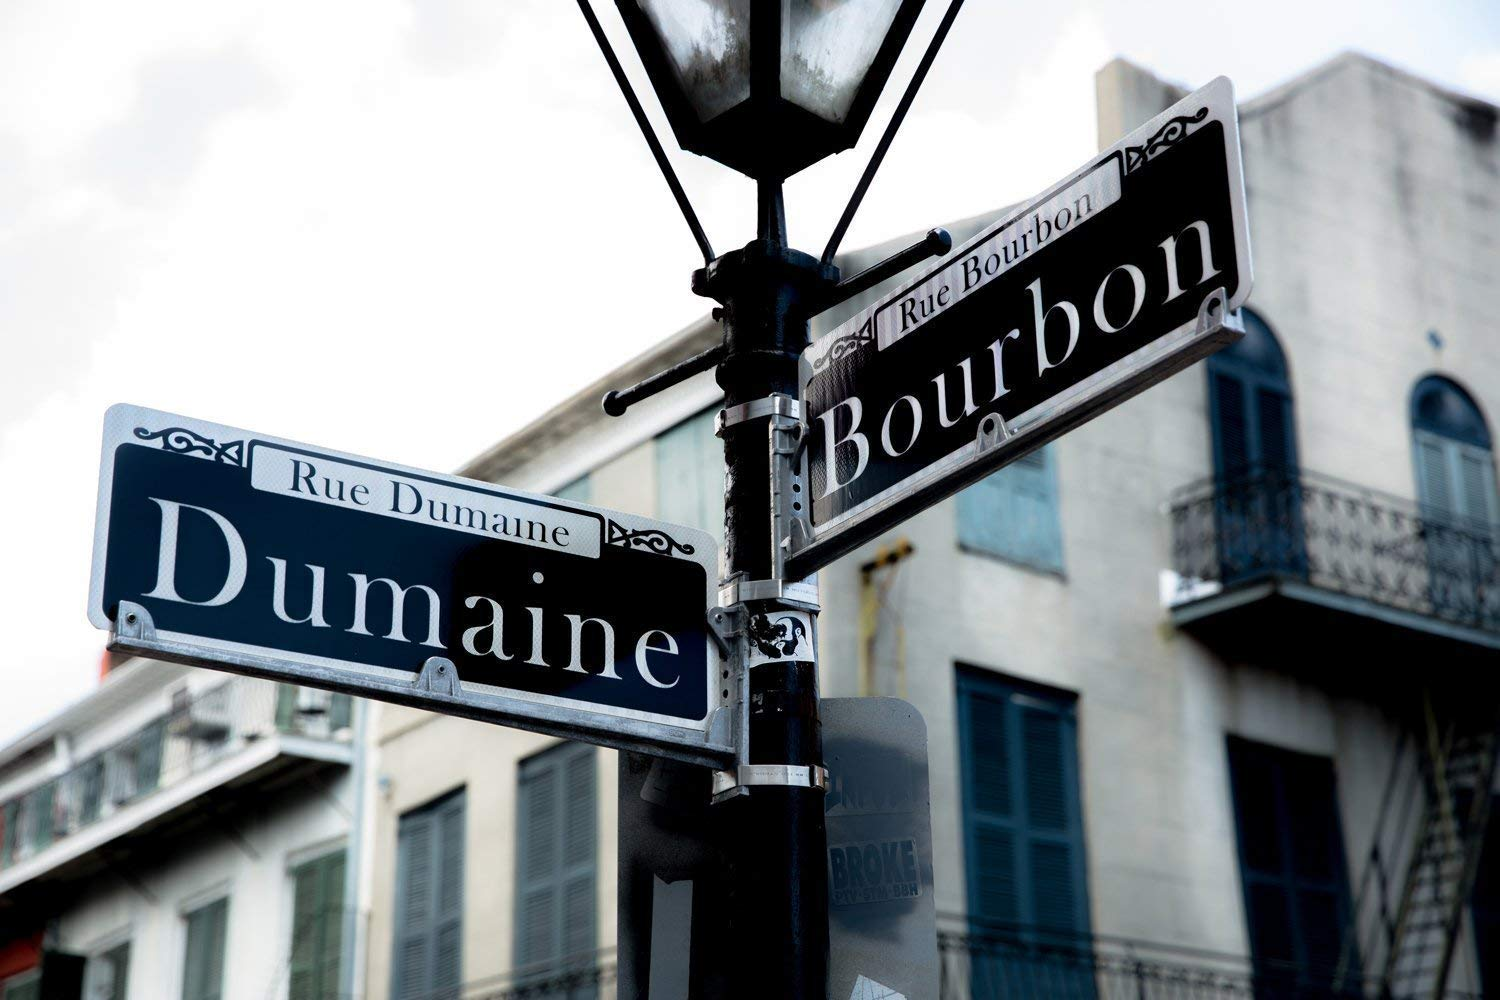 Bourbon Street Photography Art Print - Picture of Street Sign at Intersection of Dumaine and Bourbon in French Quarter New Orleans Decor 5x7 to 30x45